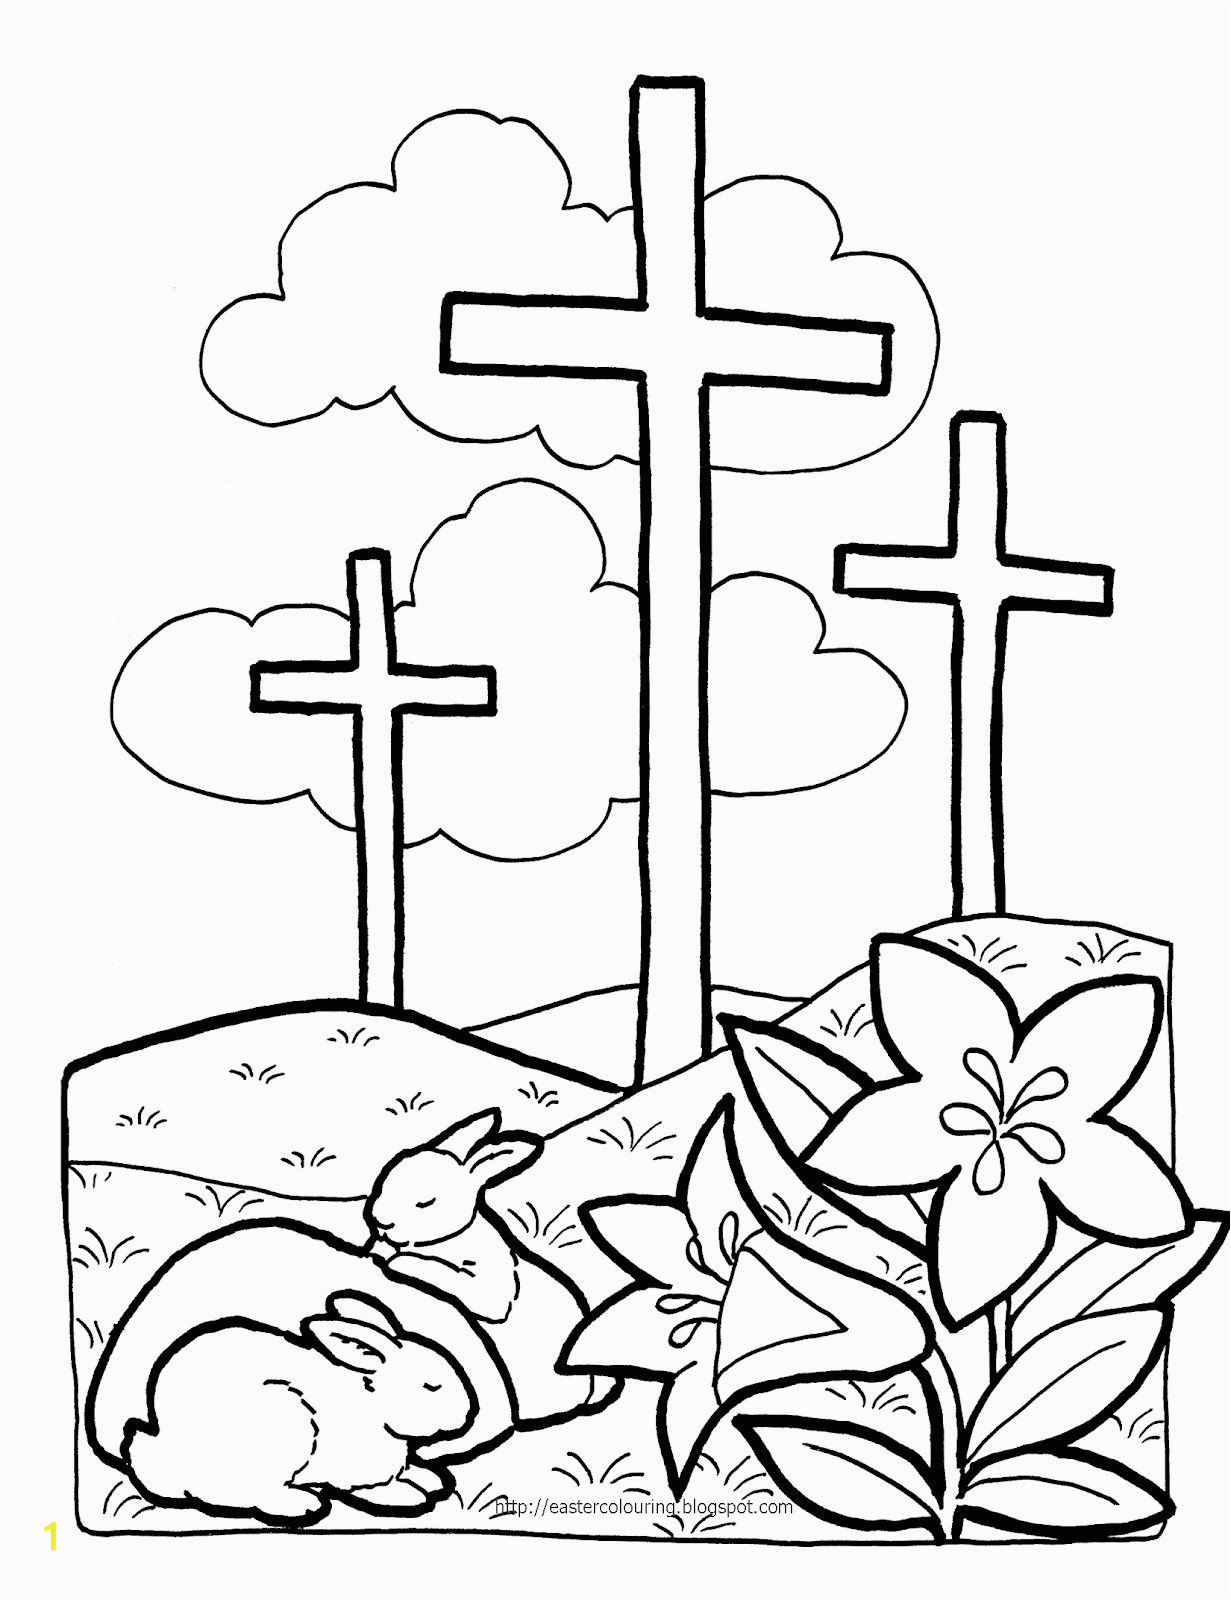 holy week pictures to colour holy week drawings for children pictures holy week colour to